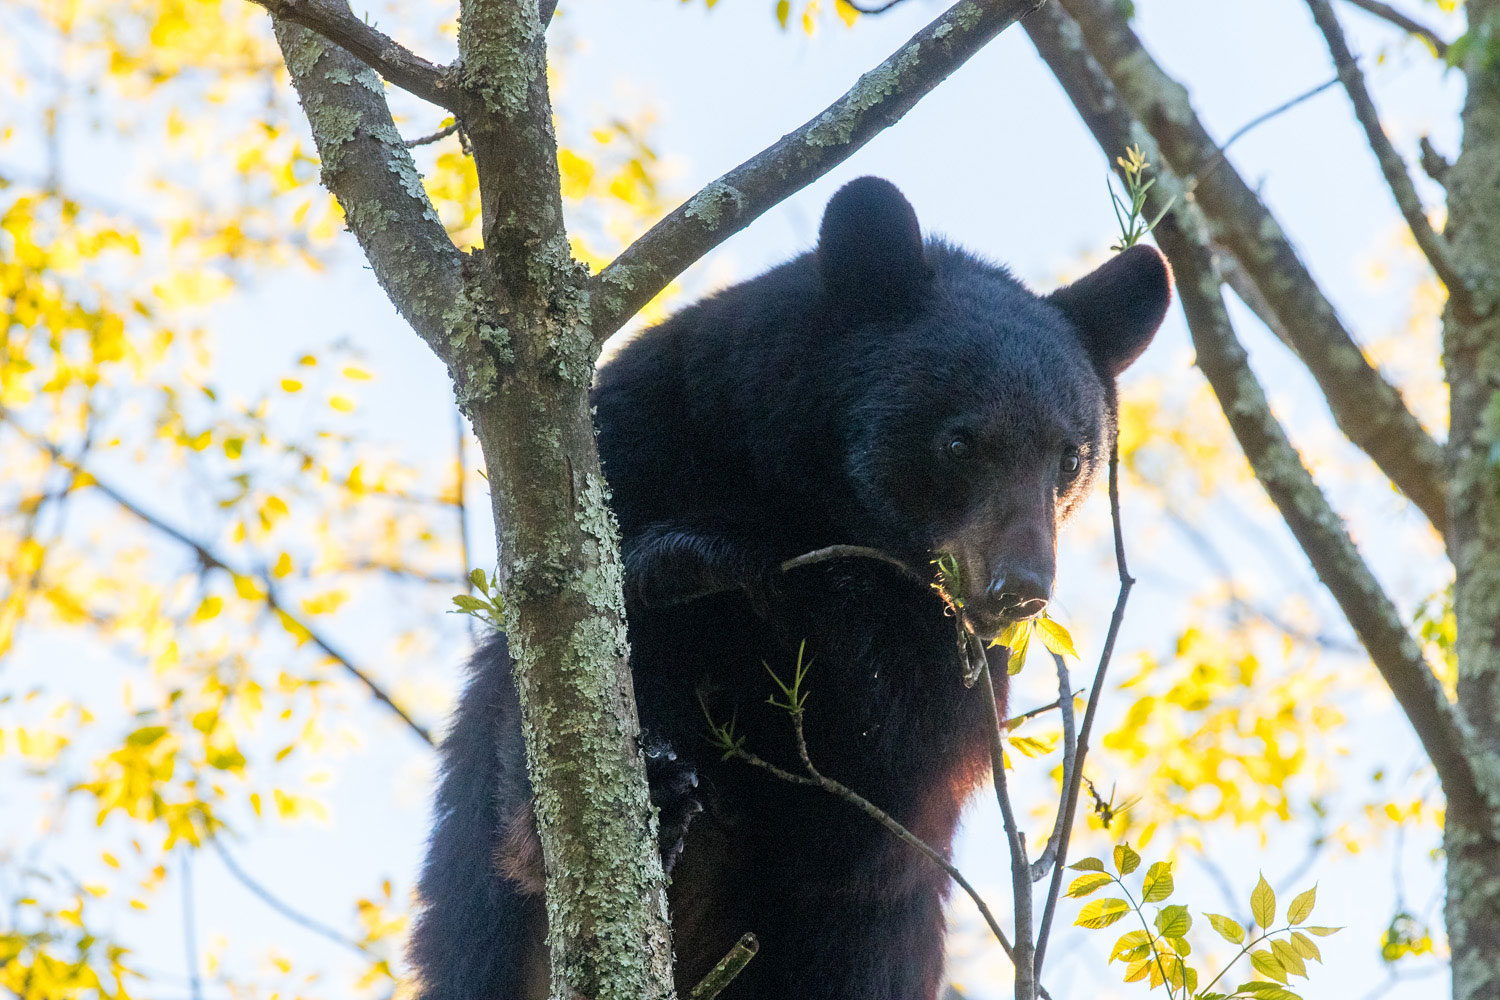 Shenandoah national park, image, photograph, black bear, tree, photo